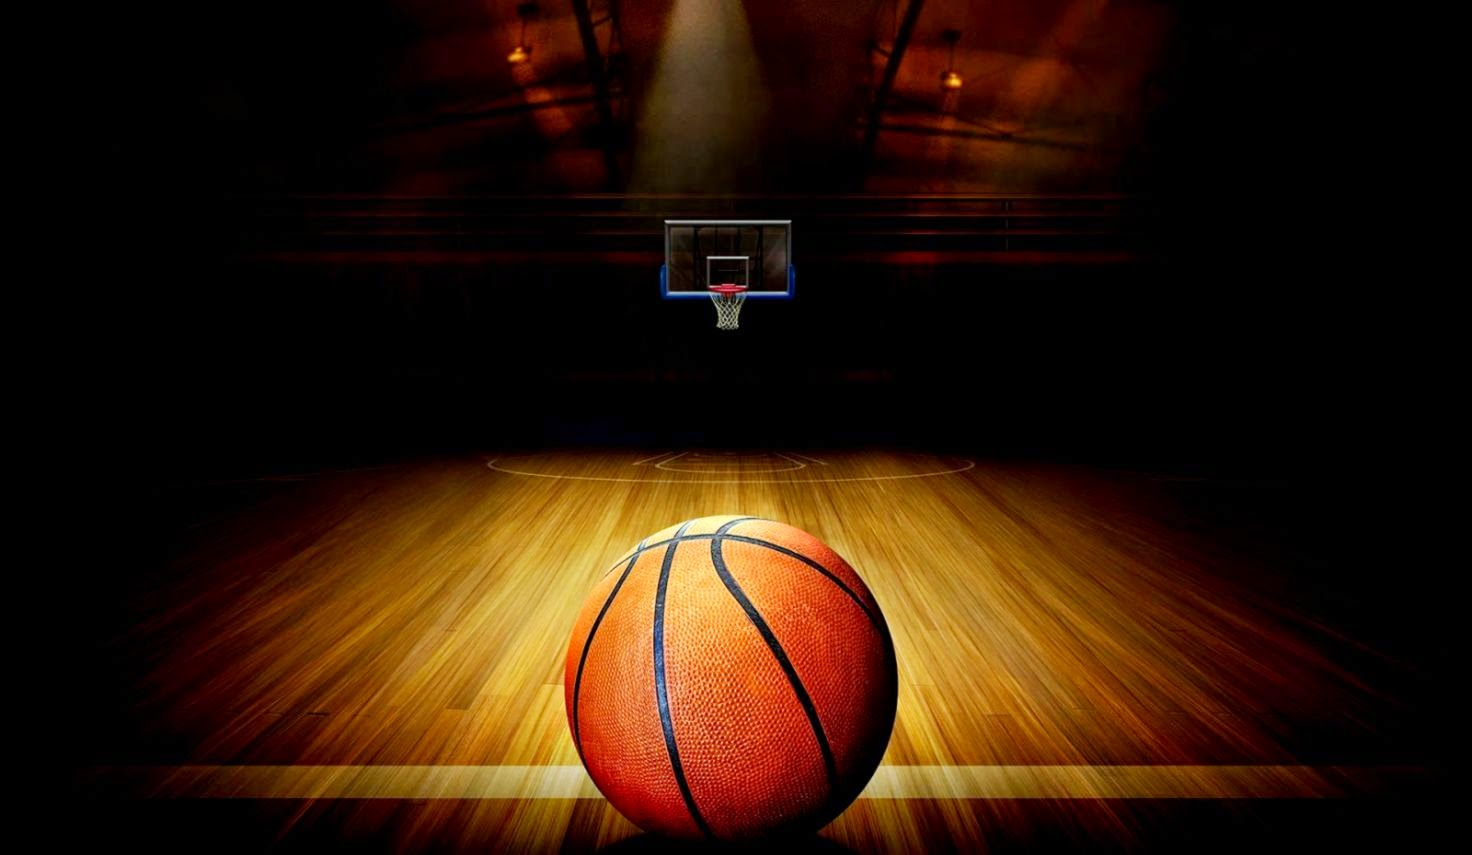 FunMozar Awesome Basketball Wallpapers 1472x855